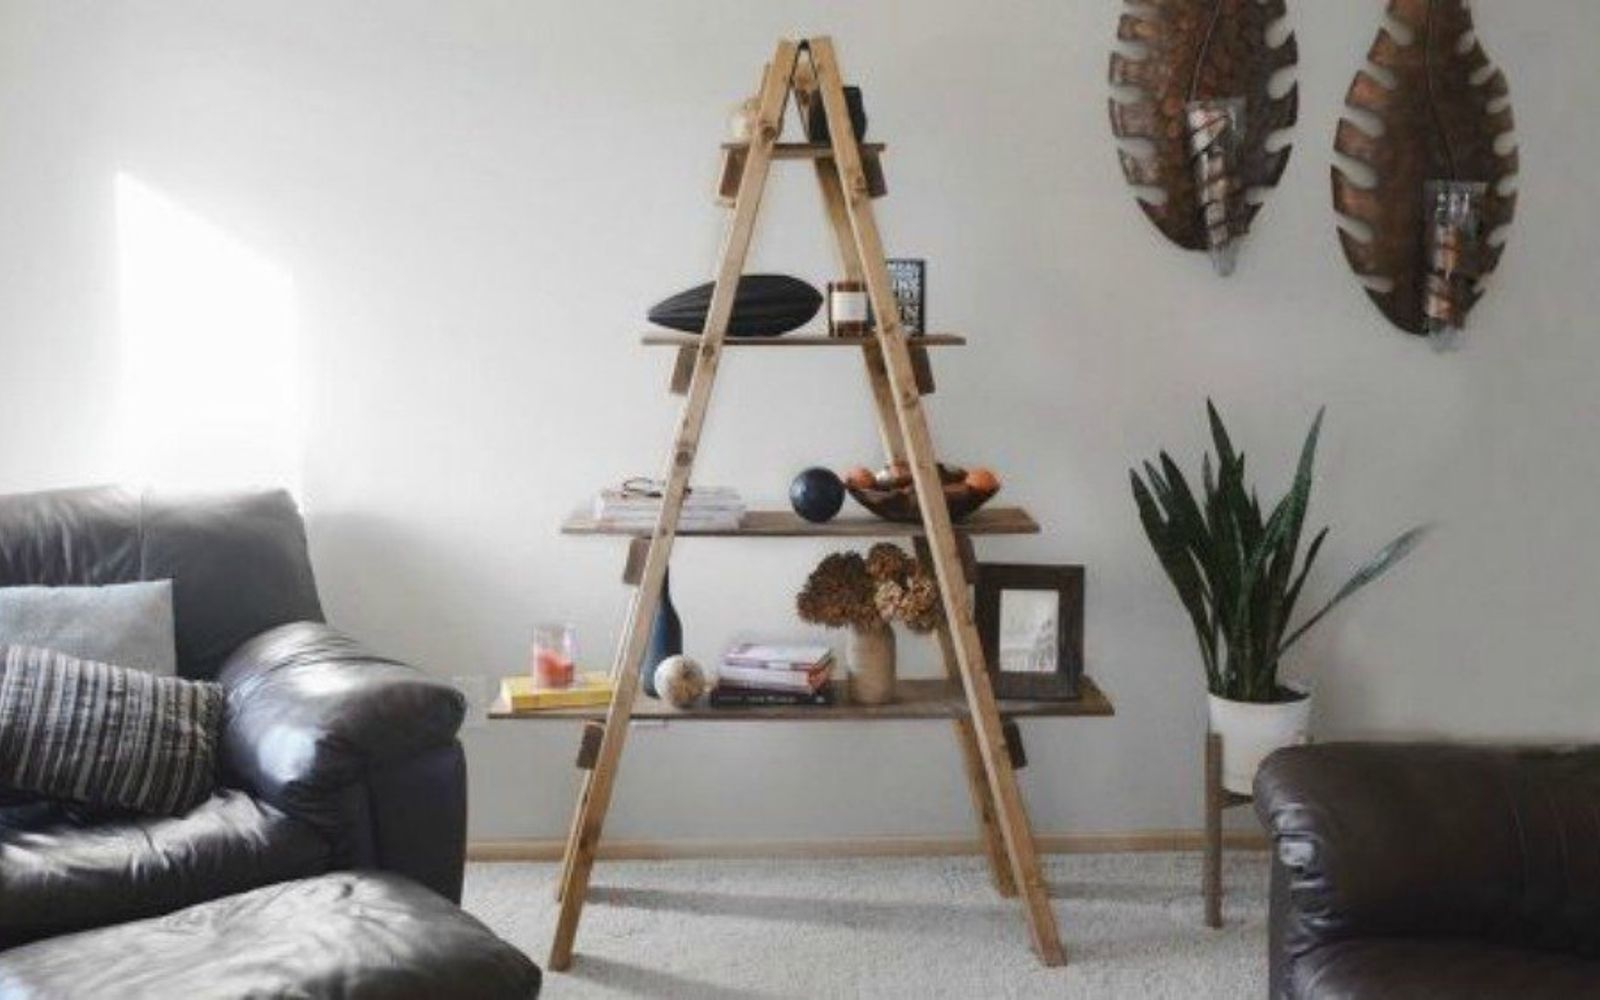 s decorate your living room for under 10 with these 15 ideas, Build a stunning rustic ladder shelf